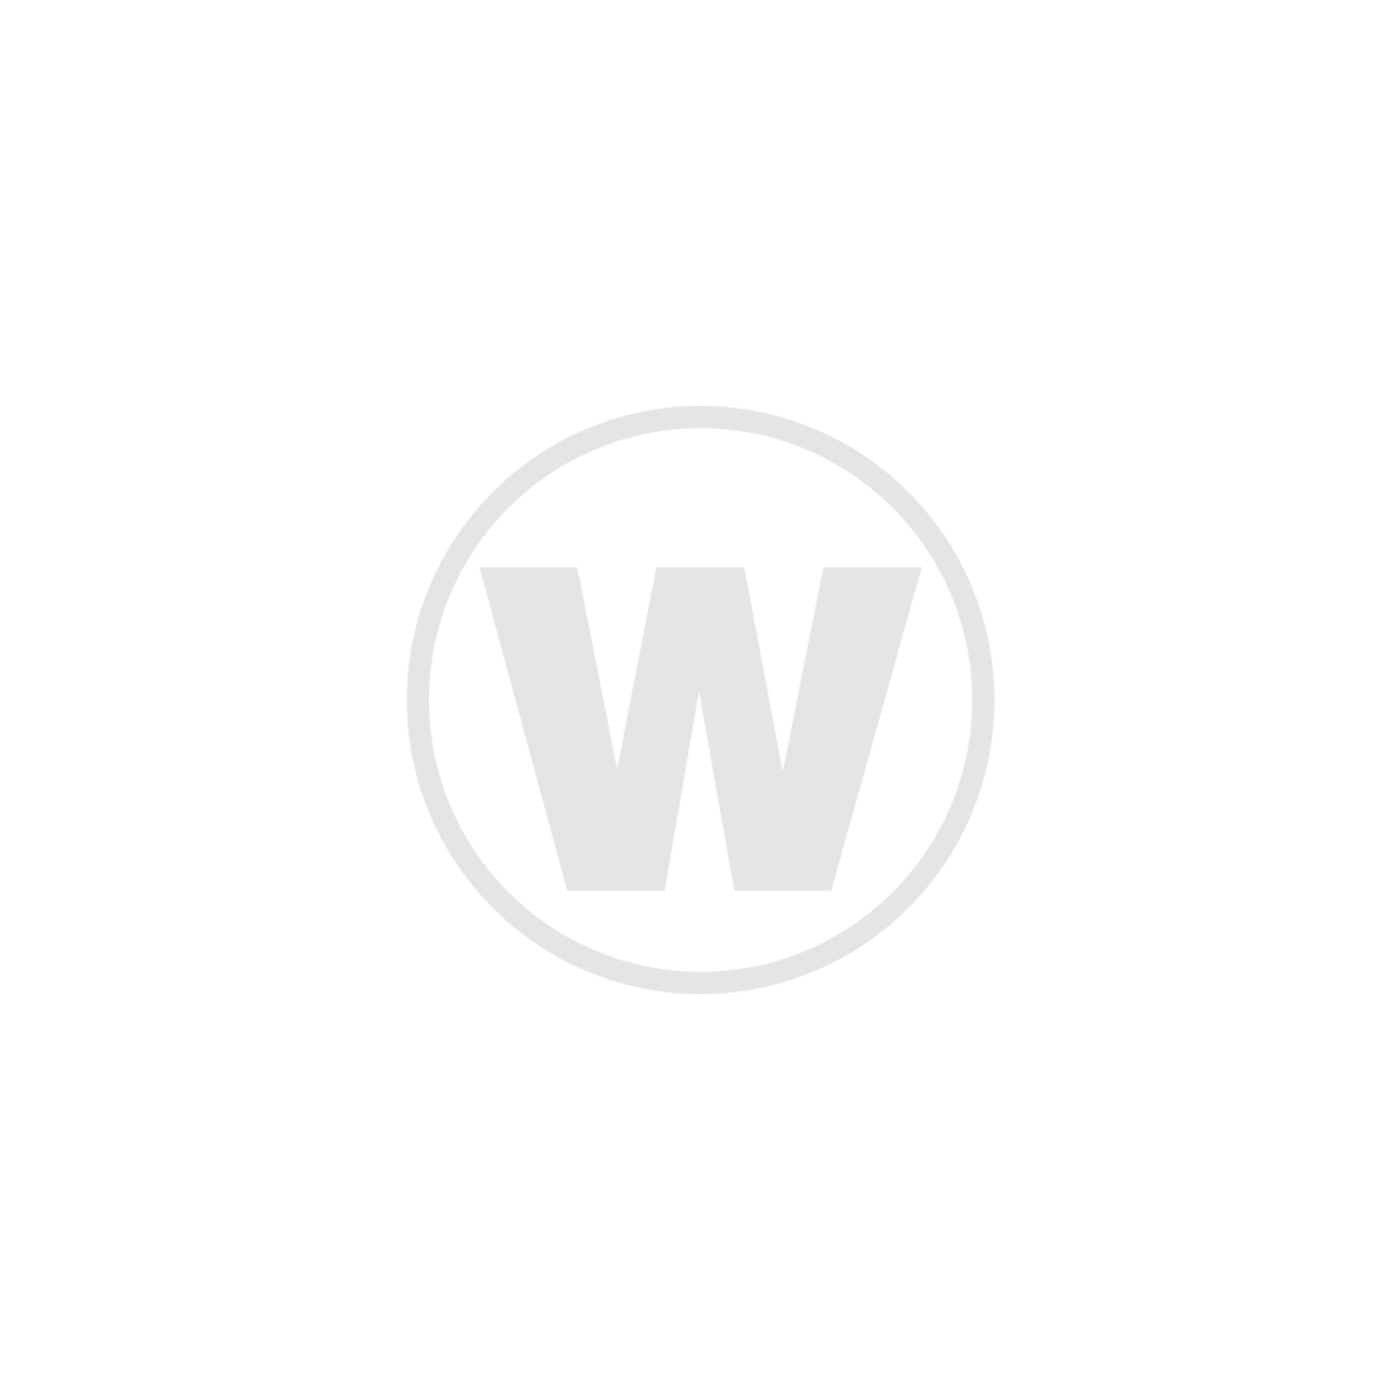 Glenfiddich 21 Year Old Experimental Series No.3 - Winter Storm Batch #1